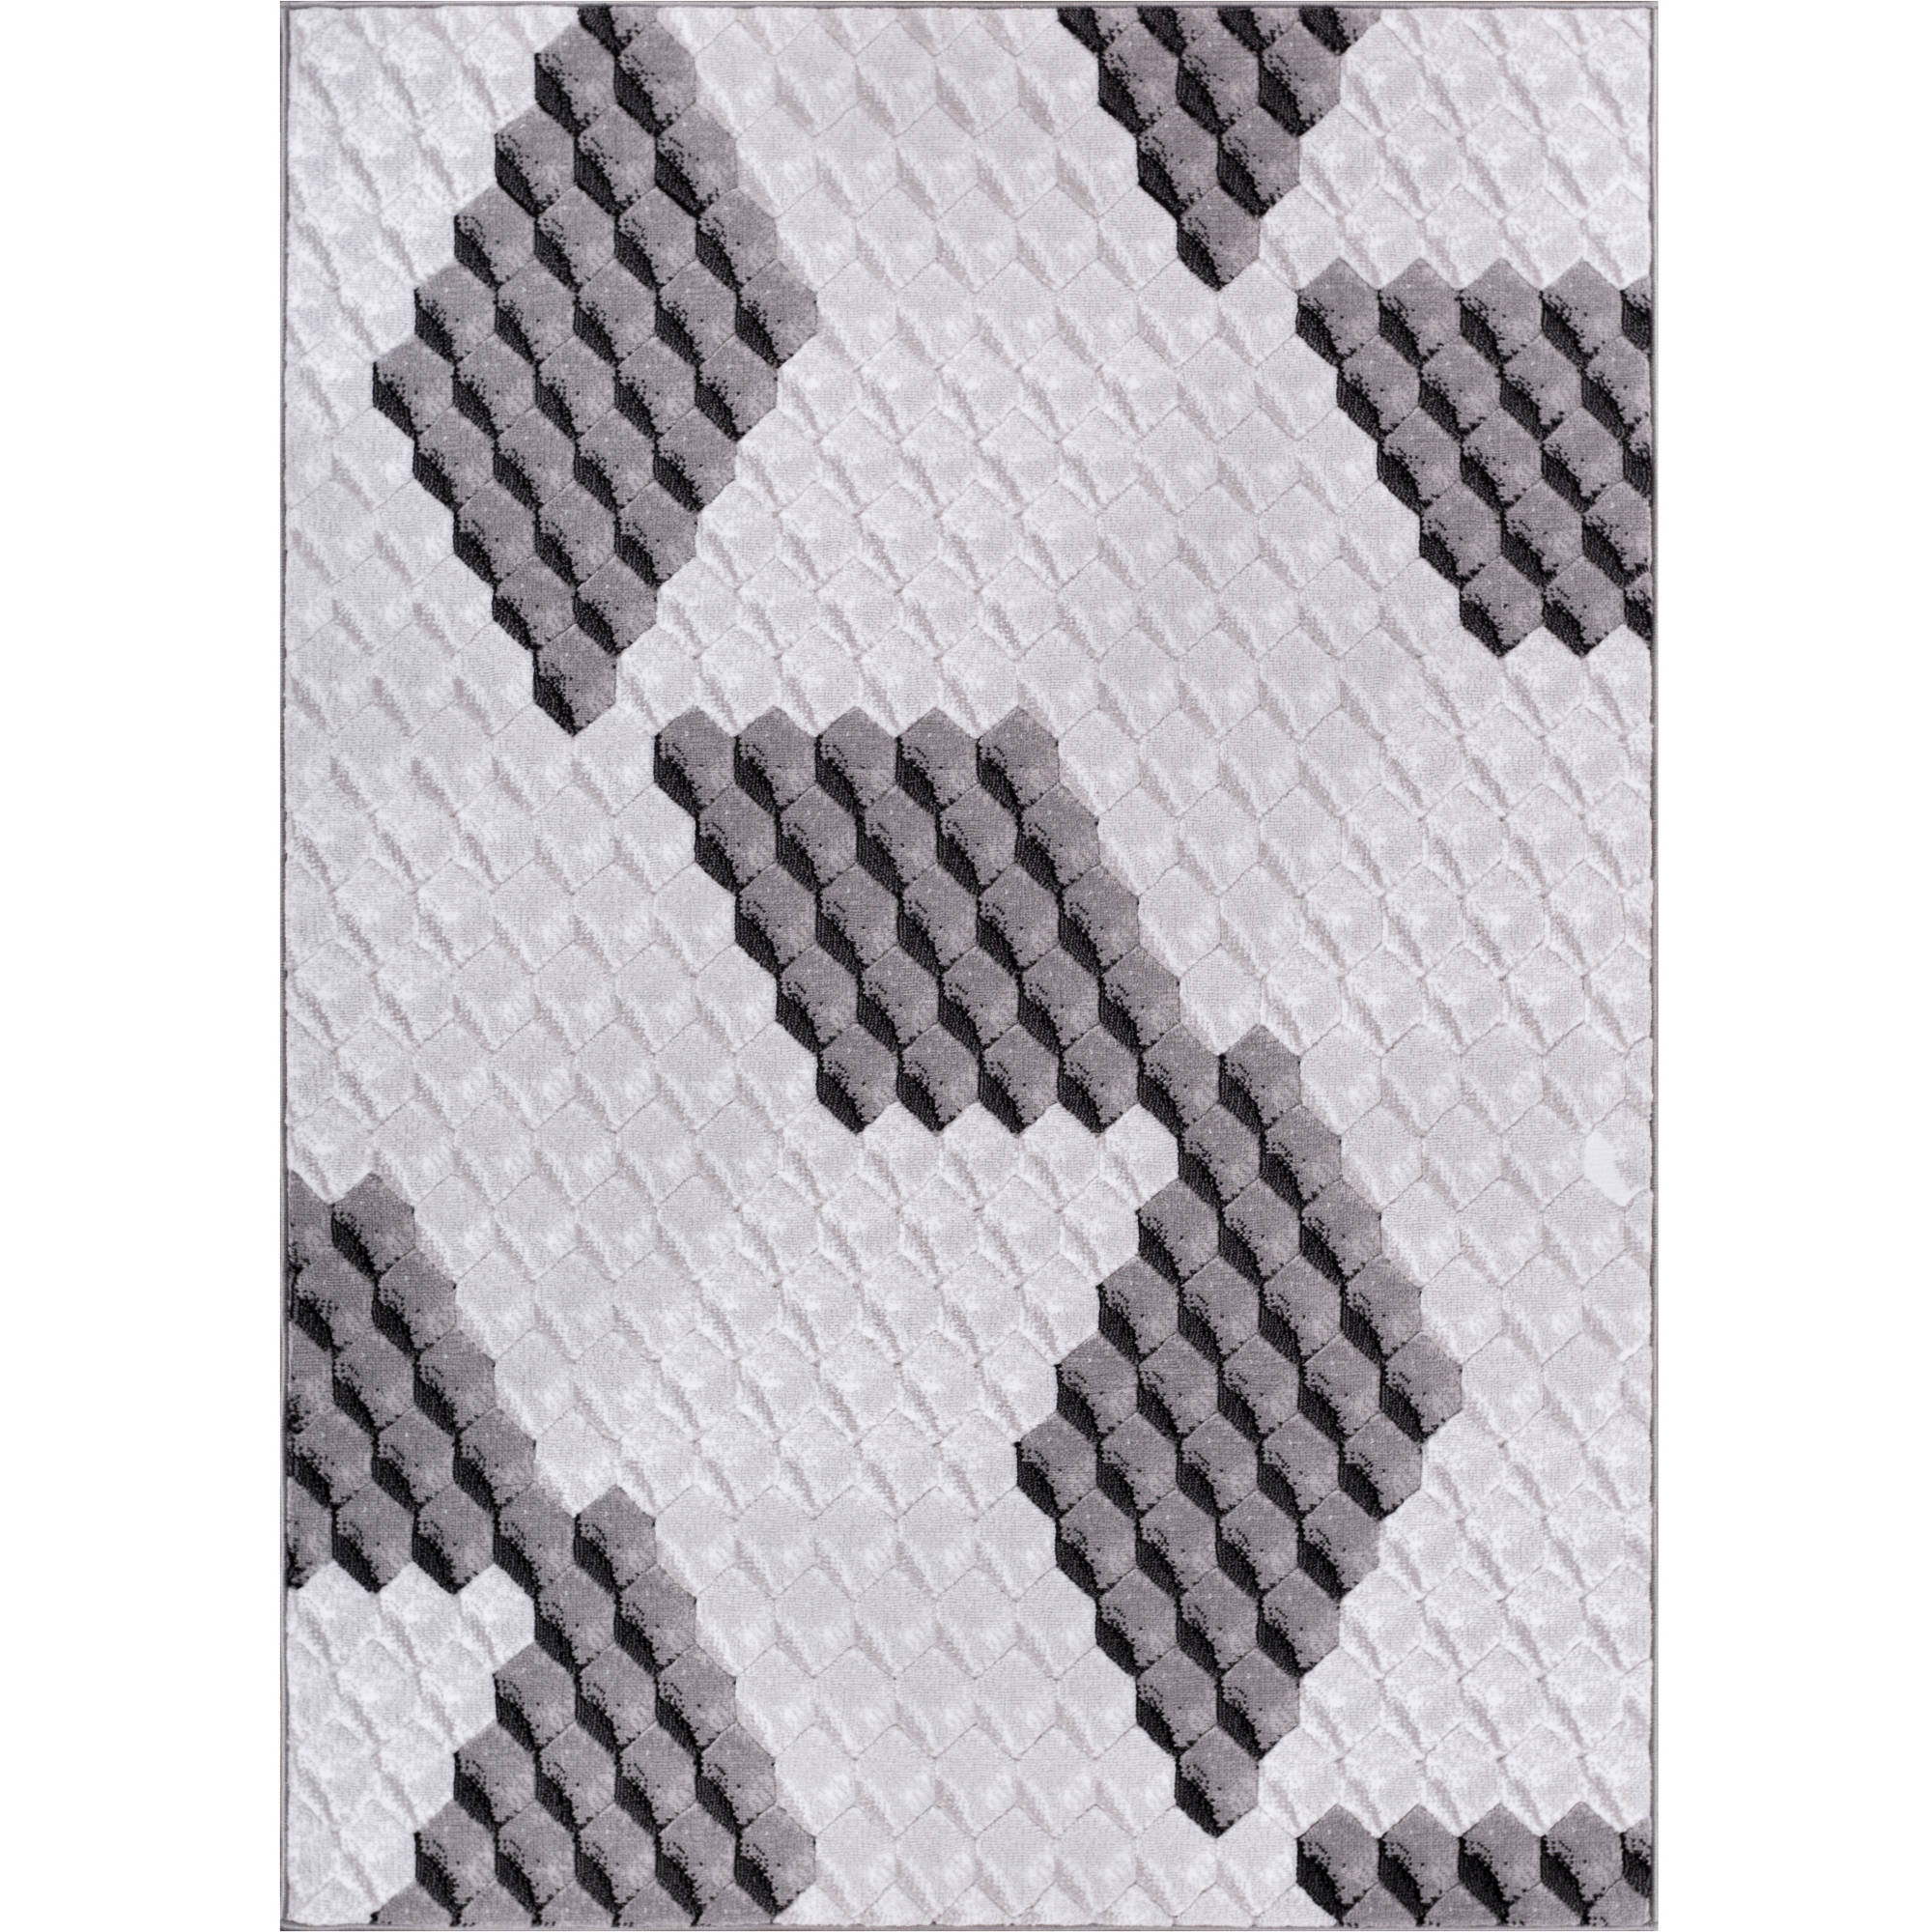 Well Woven Dulcet Goodness Modern Area Rug, Black